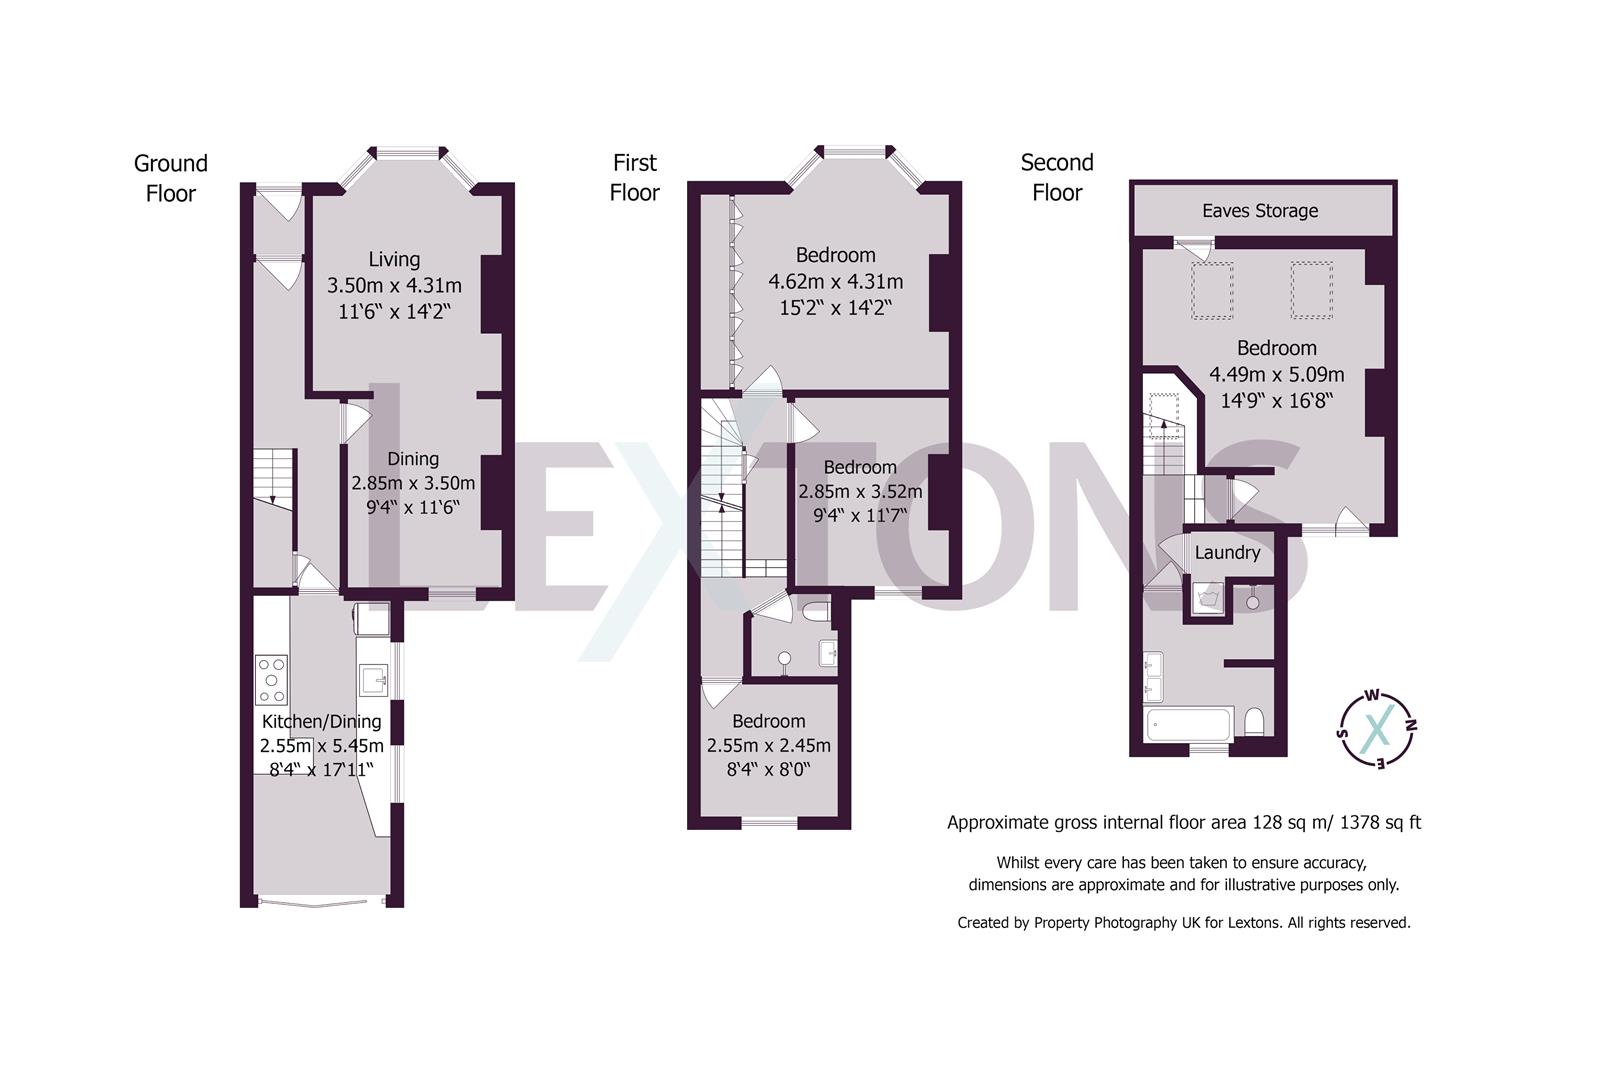 Floorplans For Shelley Road, Hove